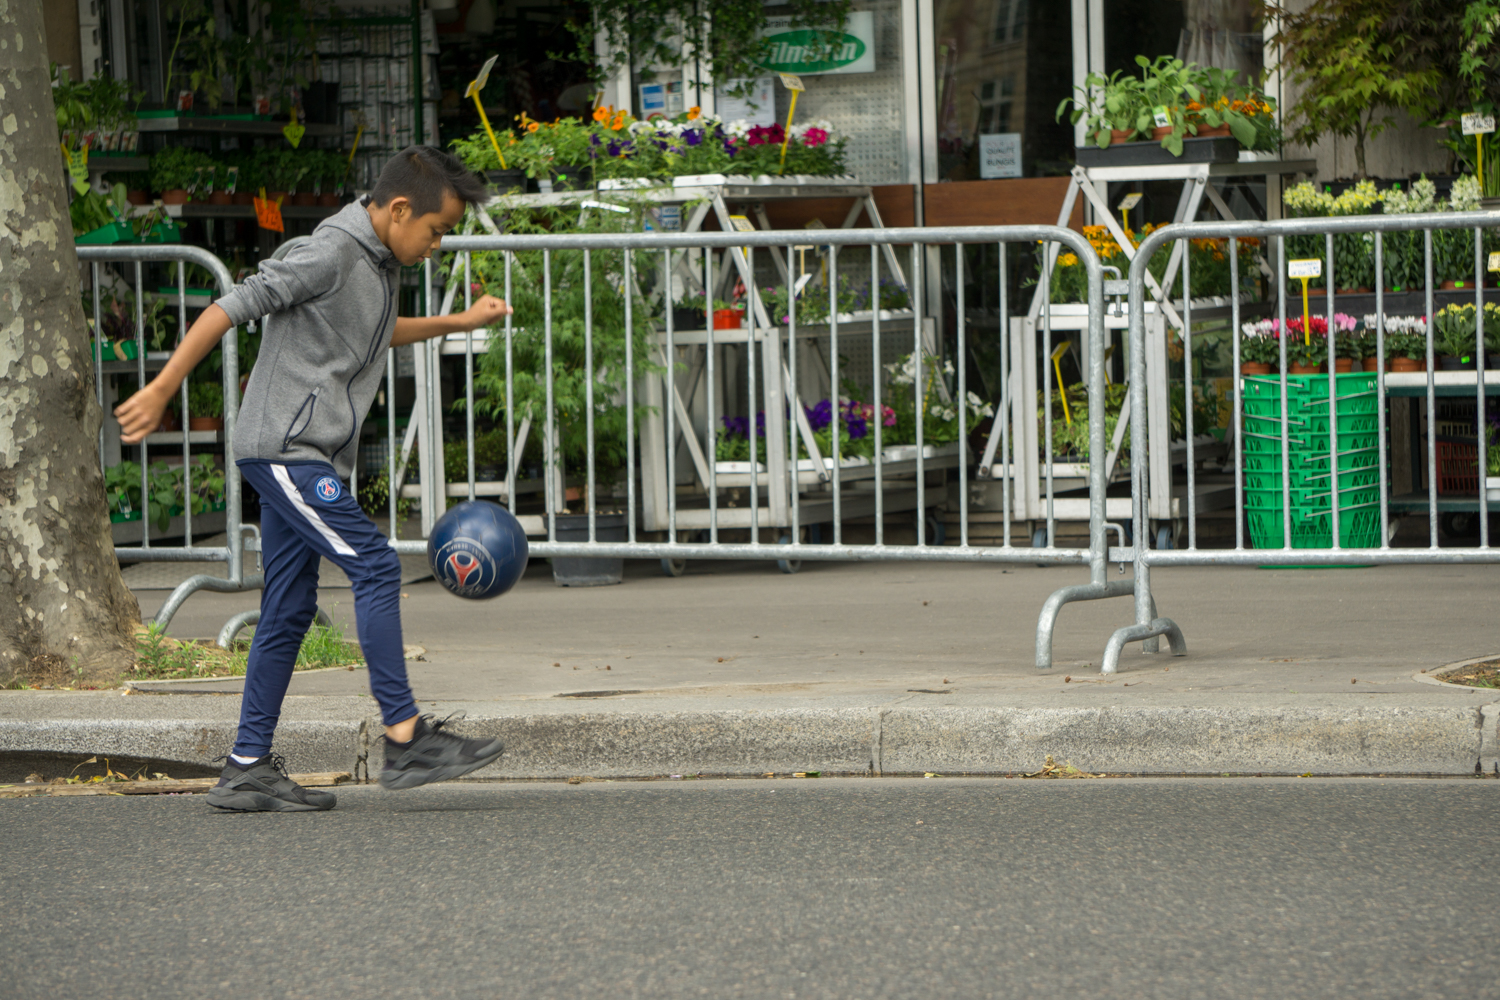 PARIS: A child plays in the street